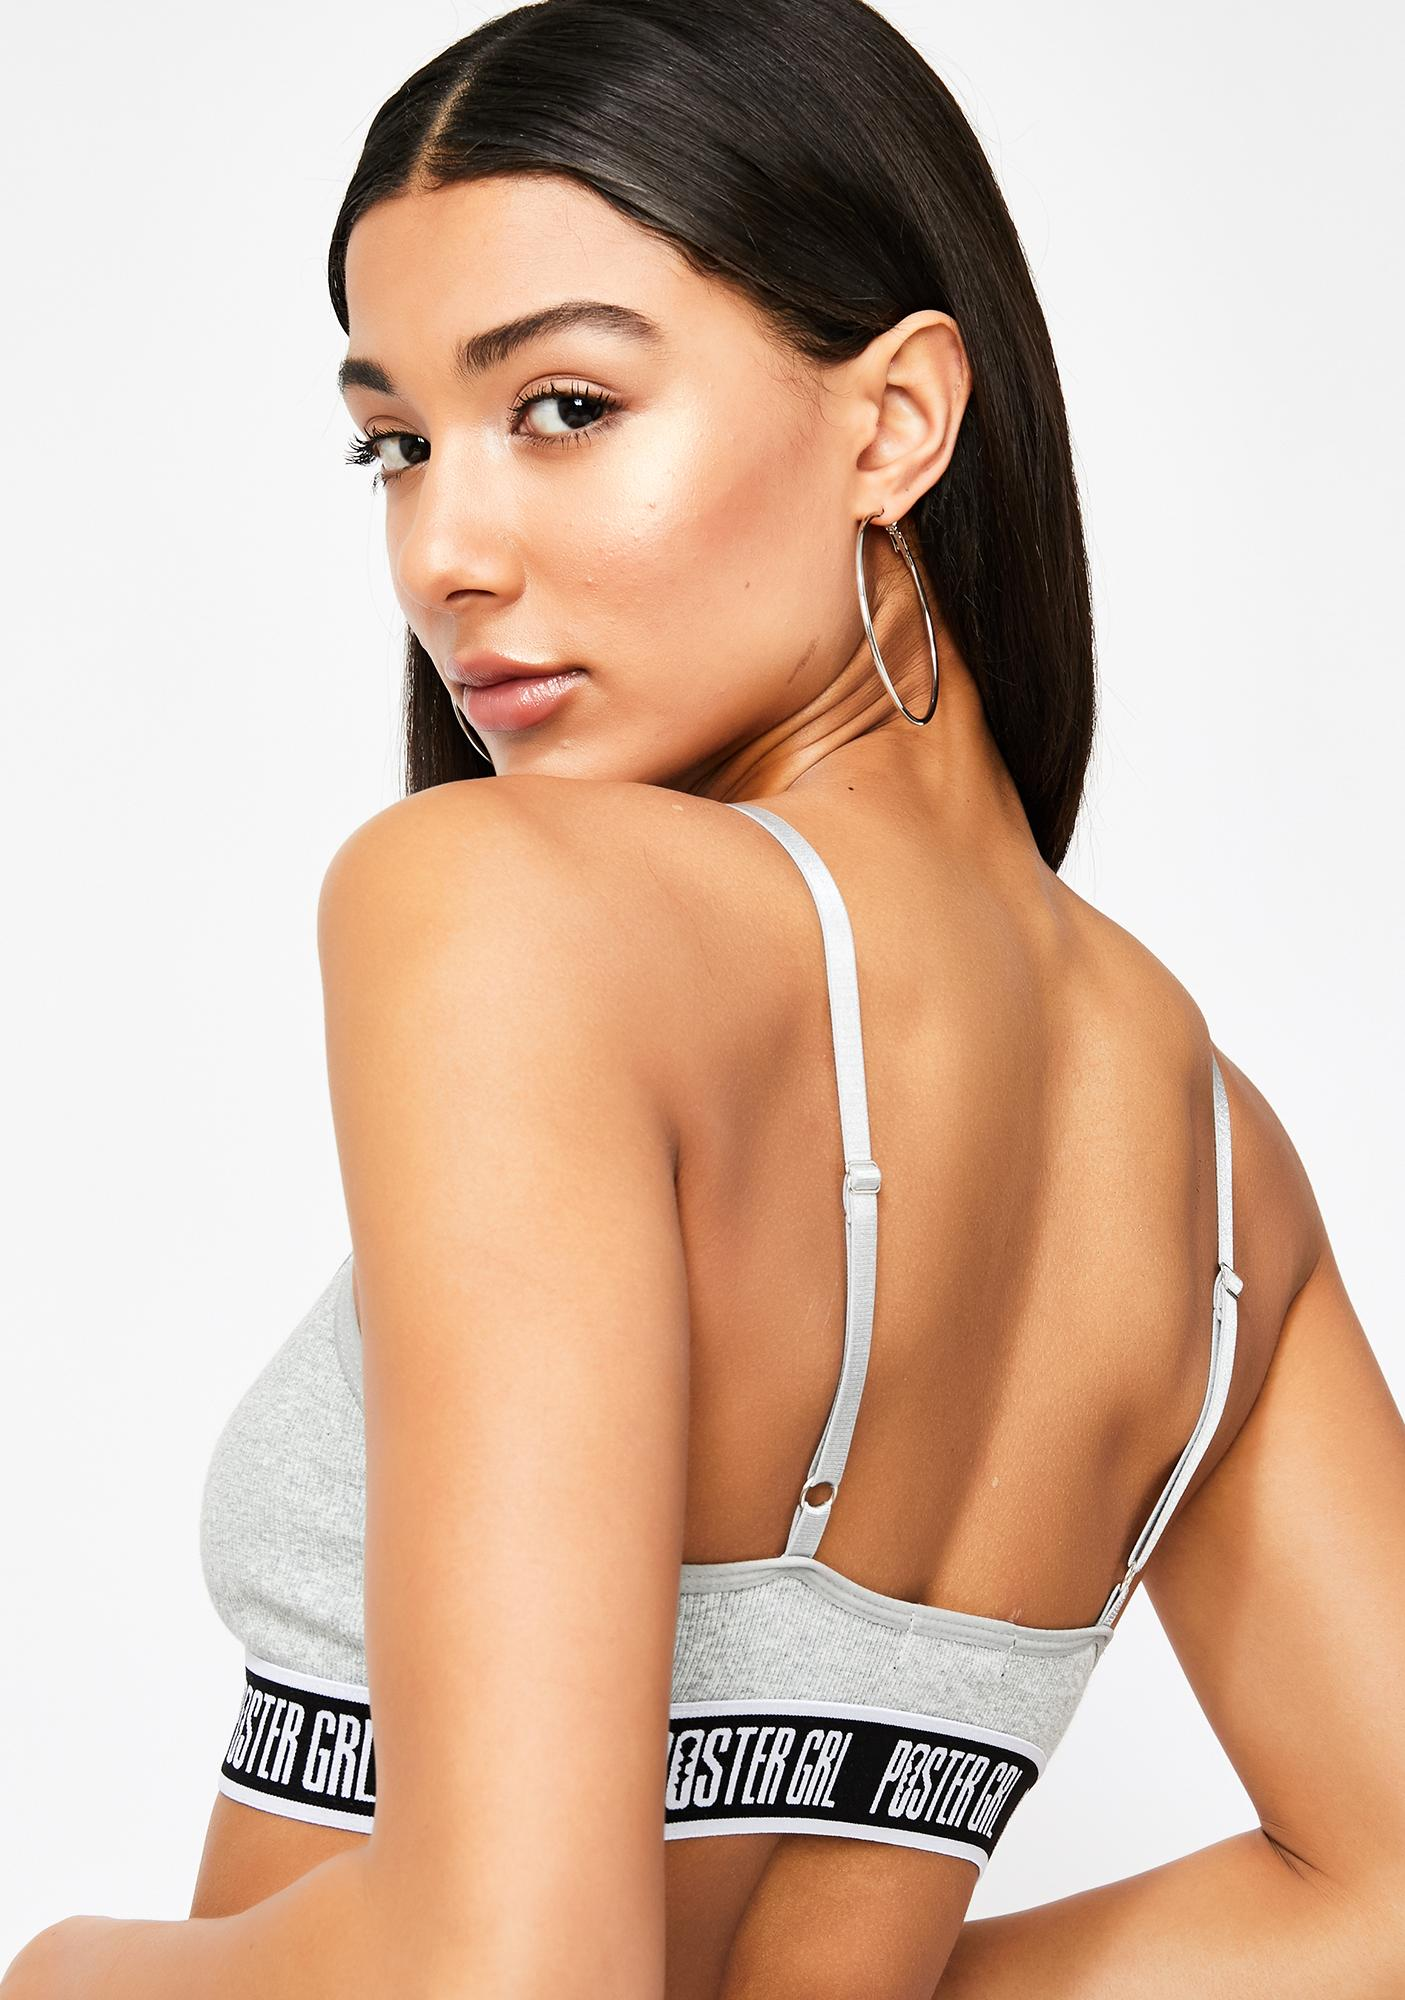 Poster Grl Boss Mode Strappy Bra